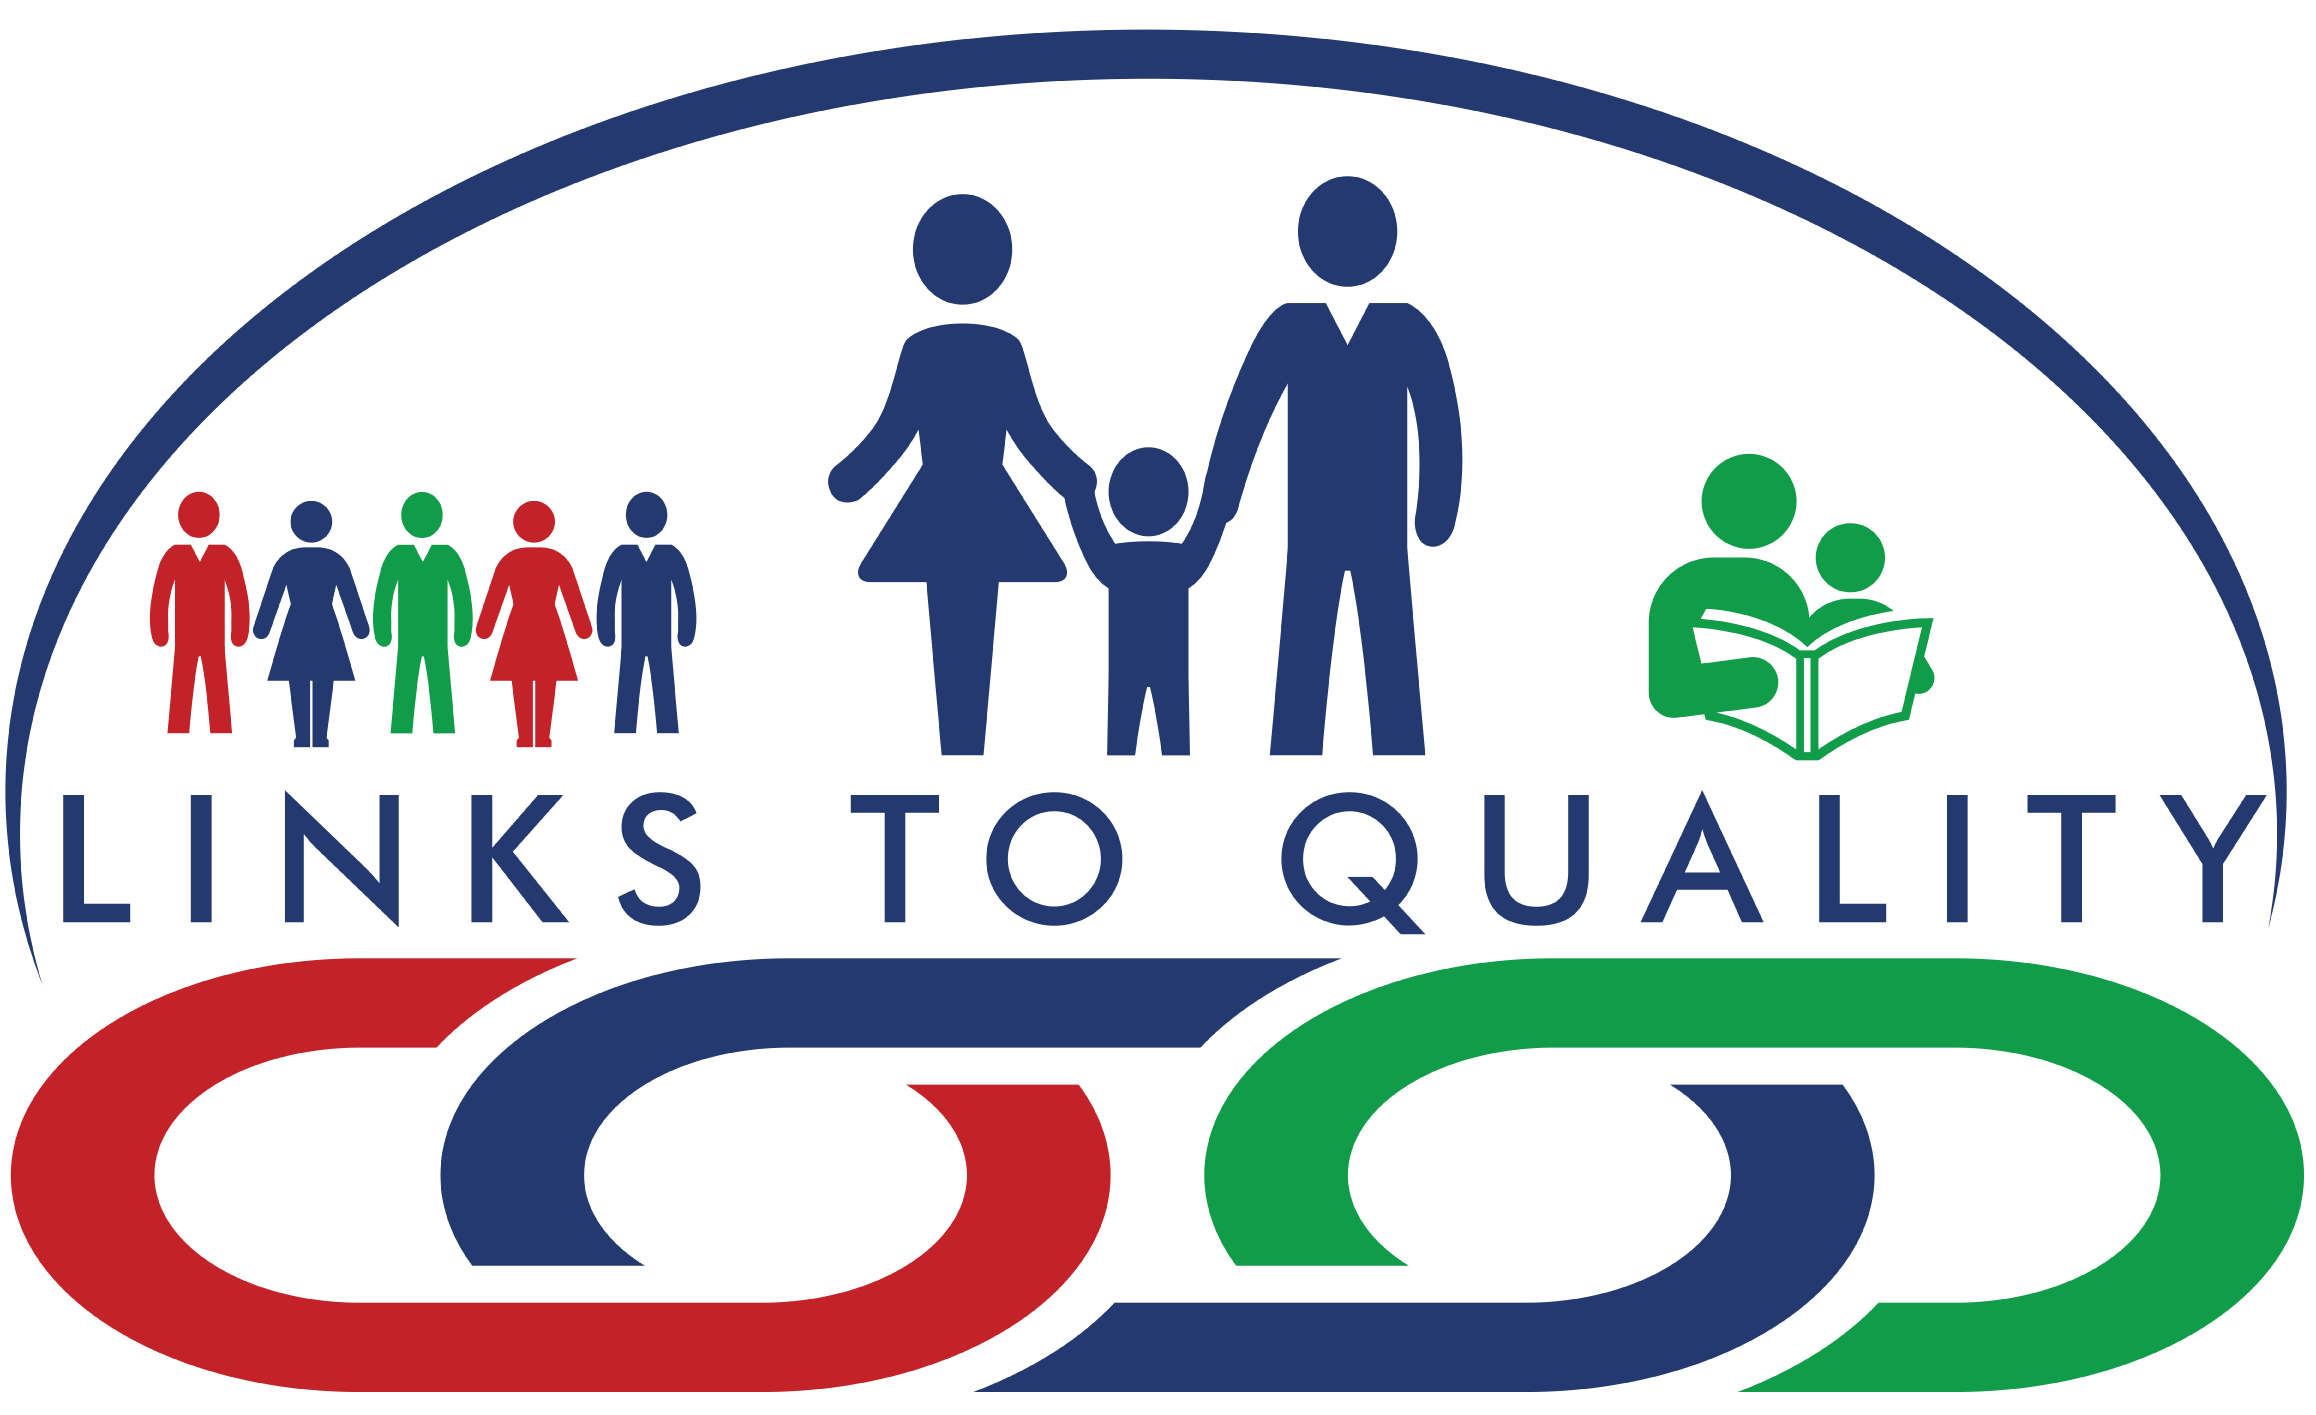 Links to Quality